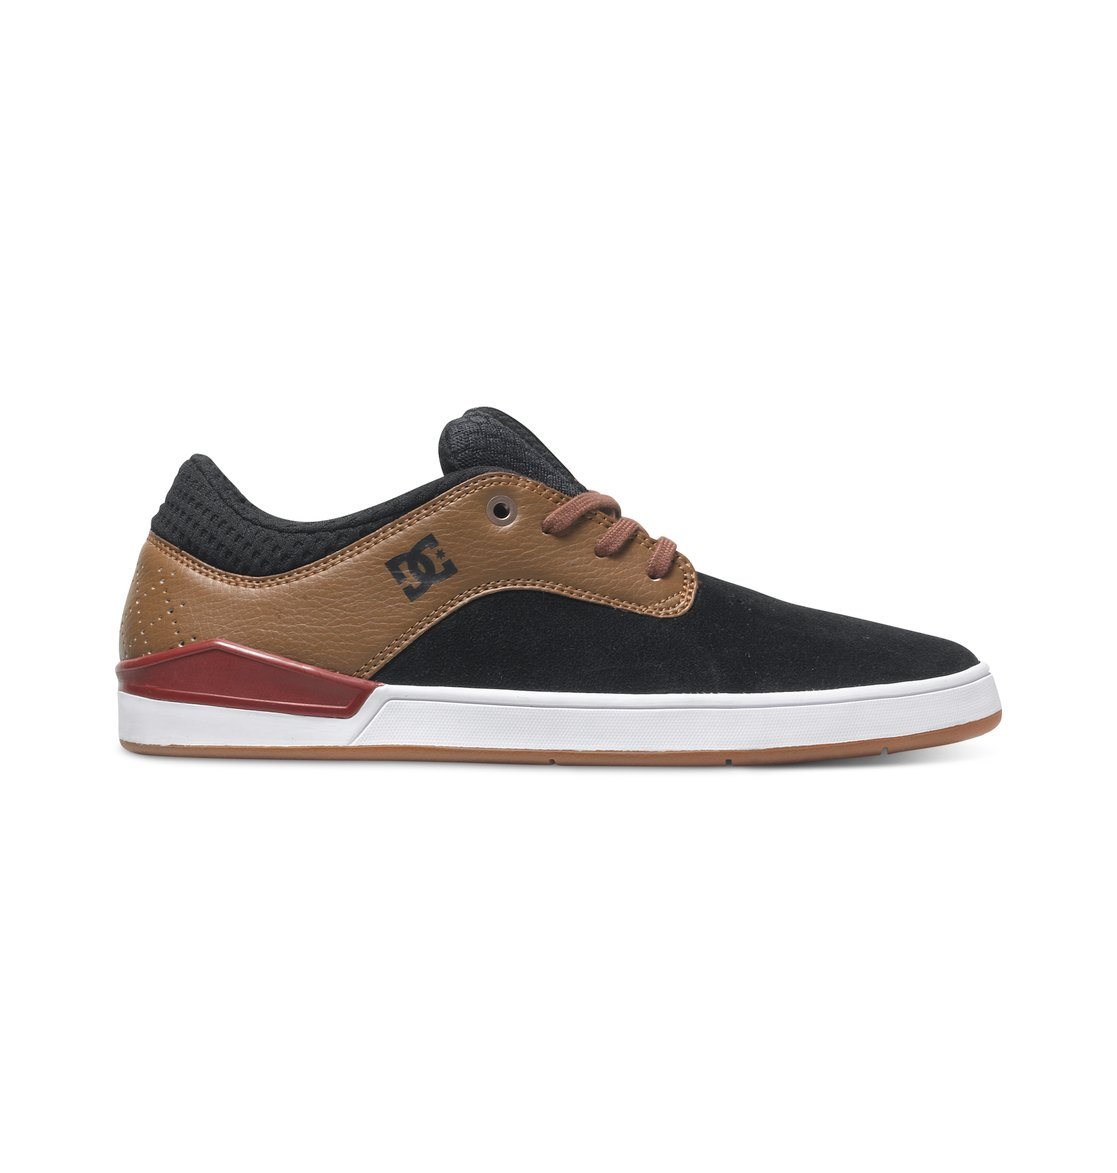 Mikey Taylor 2 S от DC Shoes